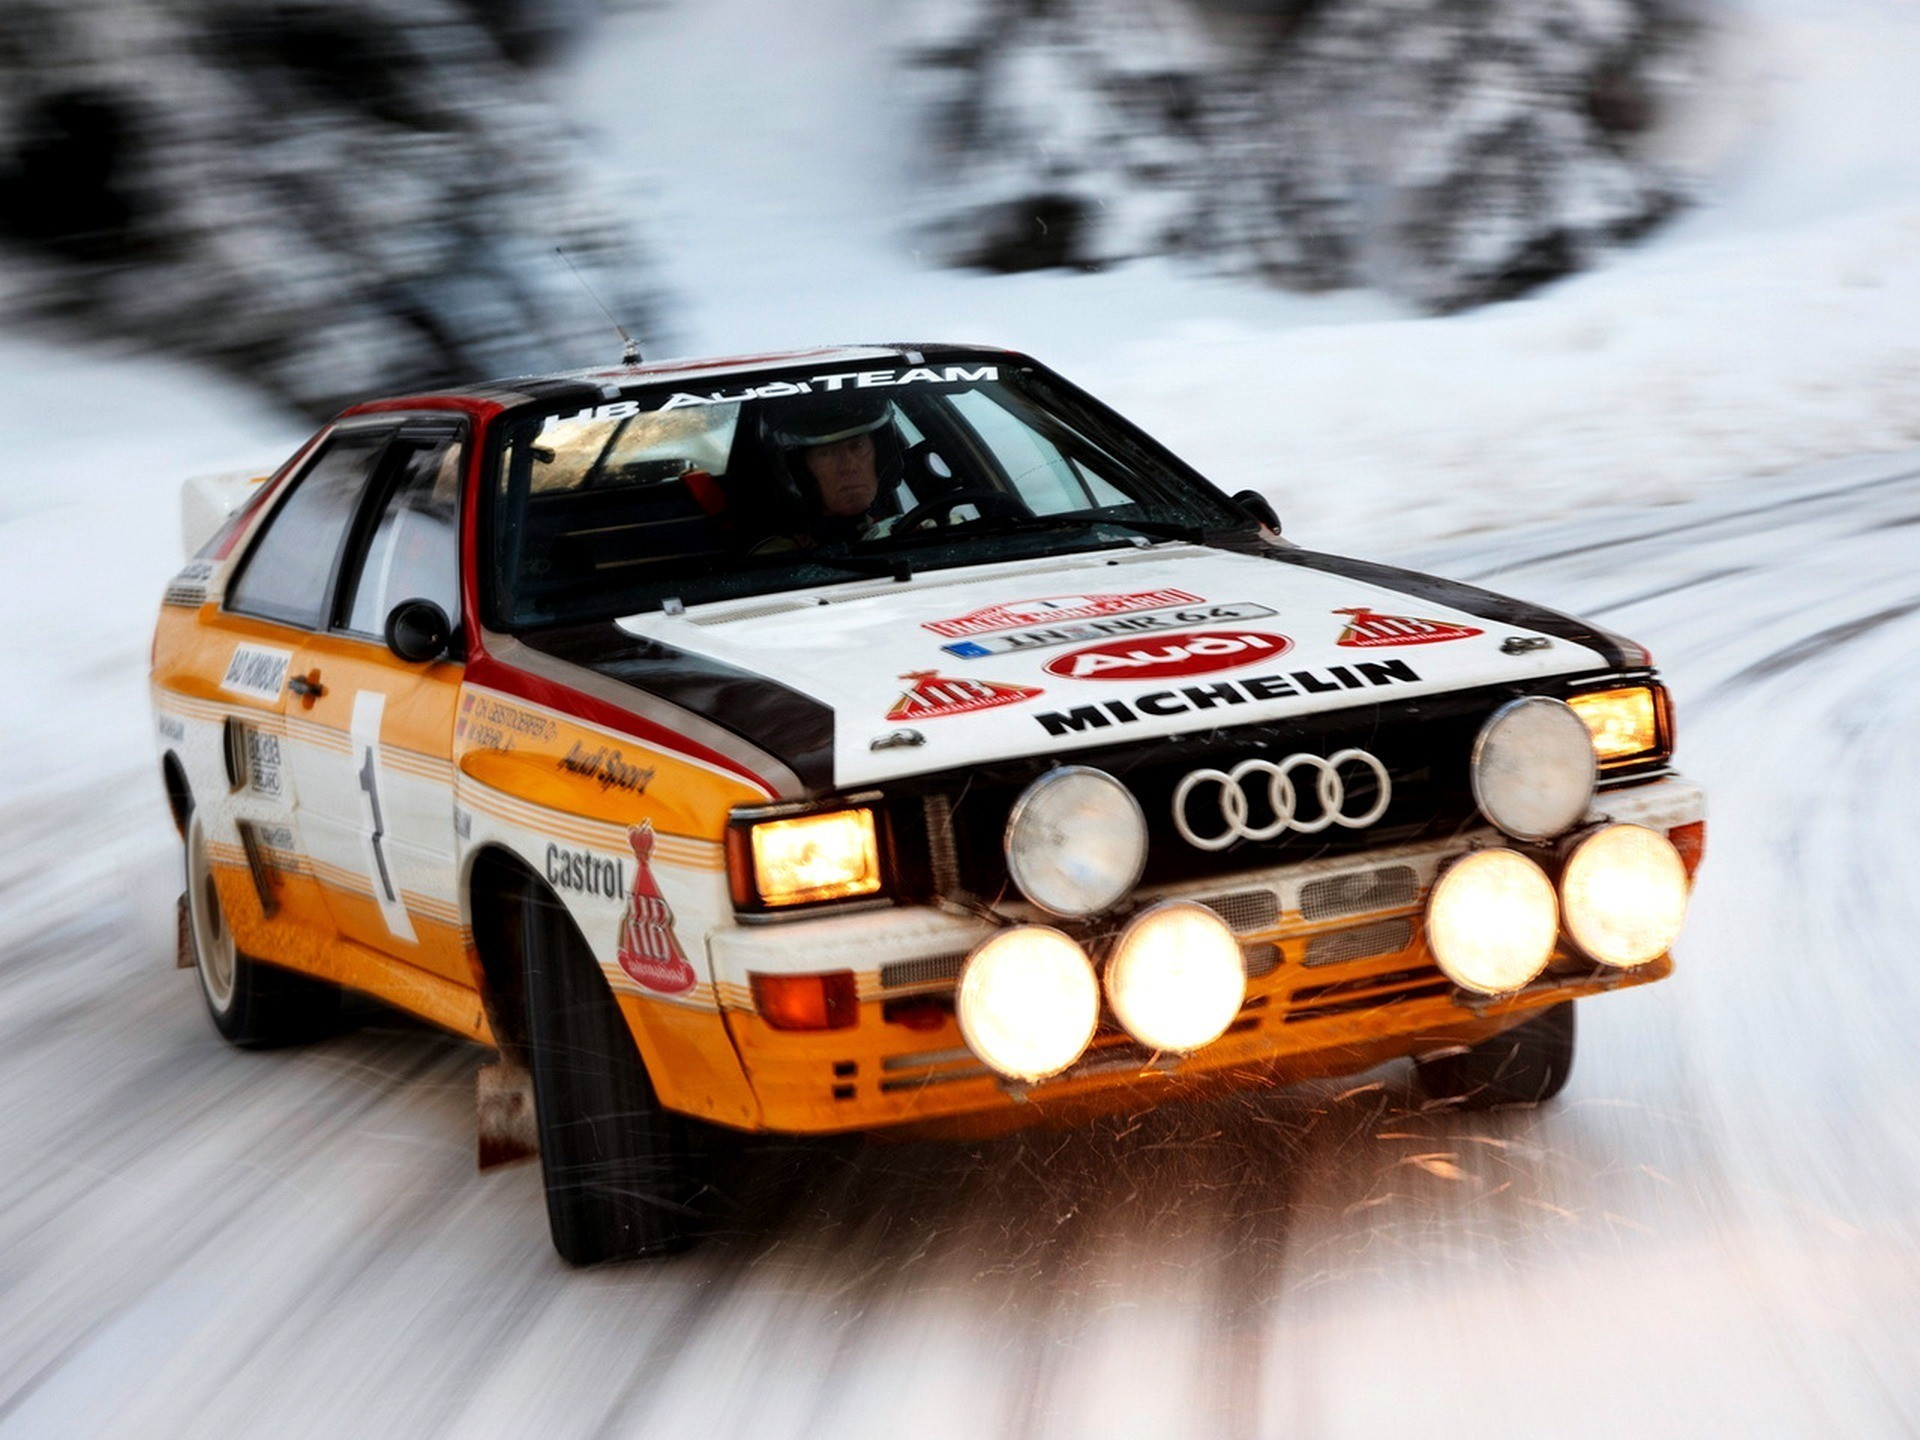 Audi Audi Quattro Car Rally Cars Sports Car Old Car - Old Audi Rally Car , HD Wallpaper & Backgrounds